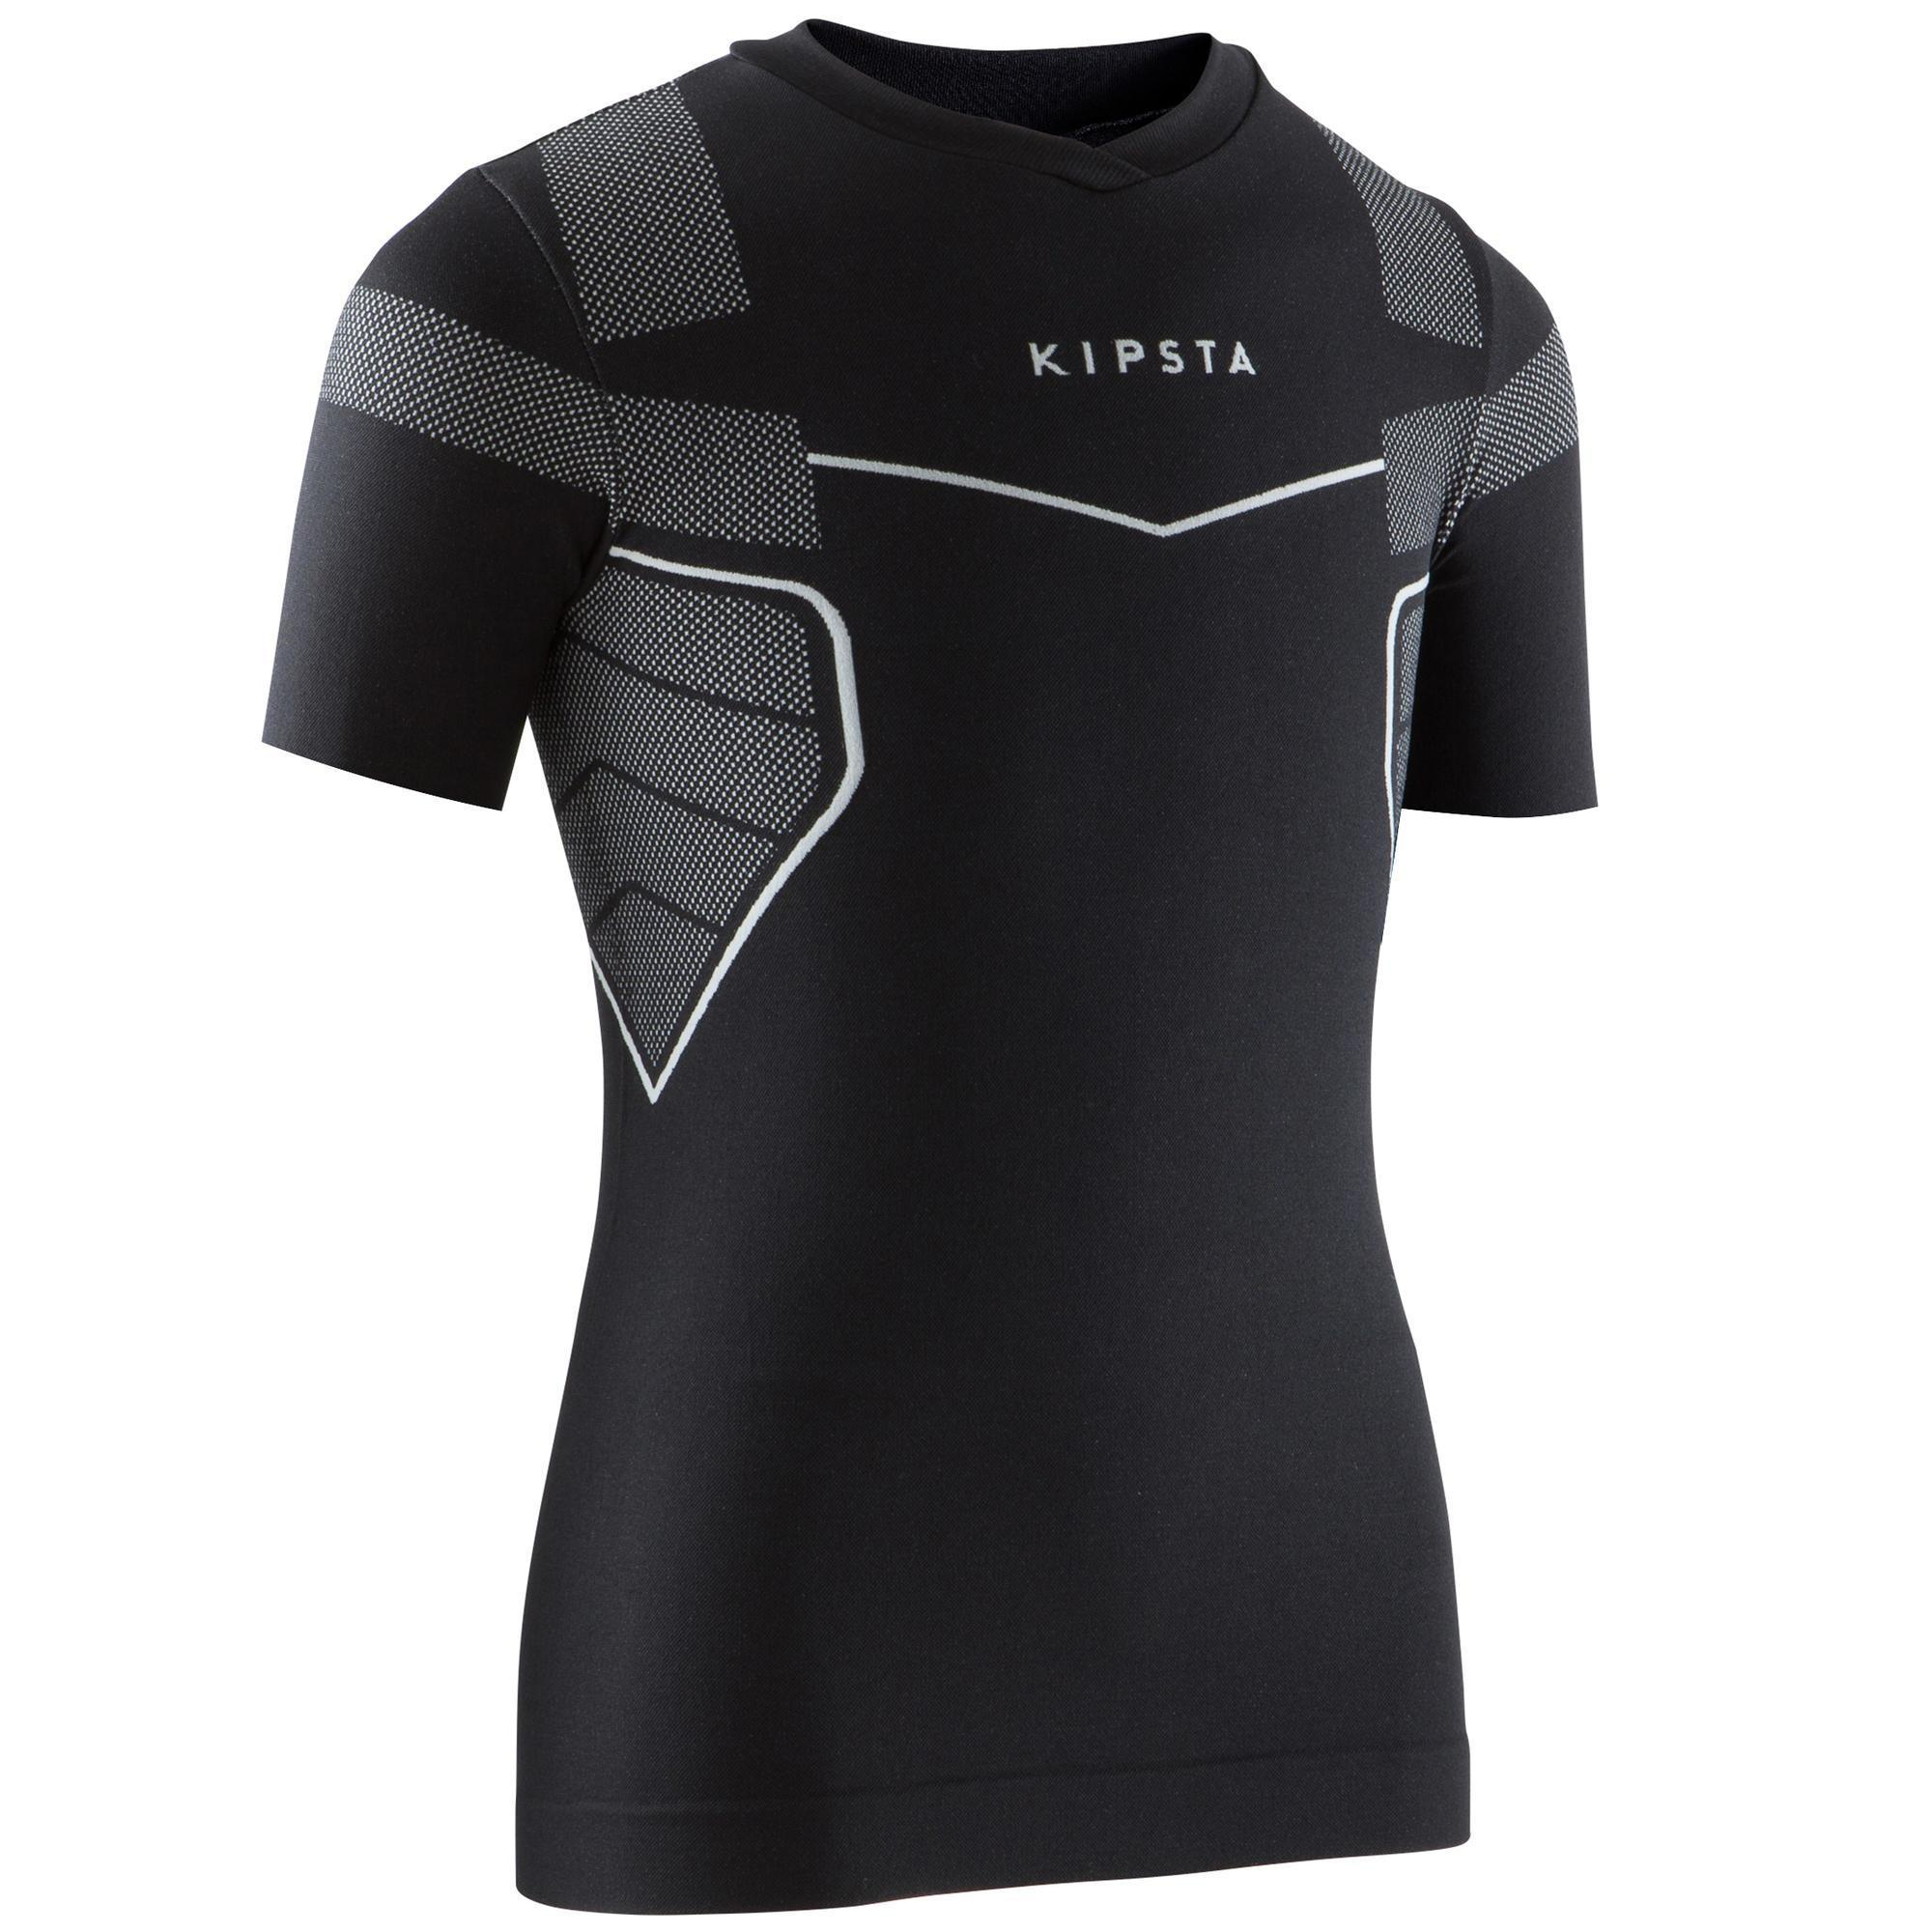 Kipsta Thermoshirt kind Keepdry 500 met korte mouwen zwart